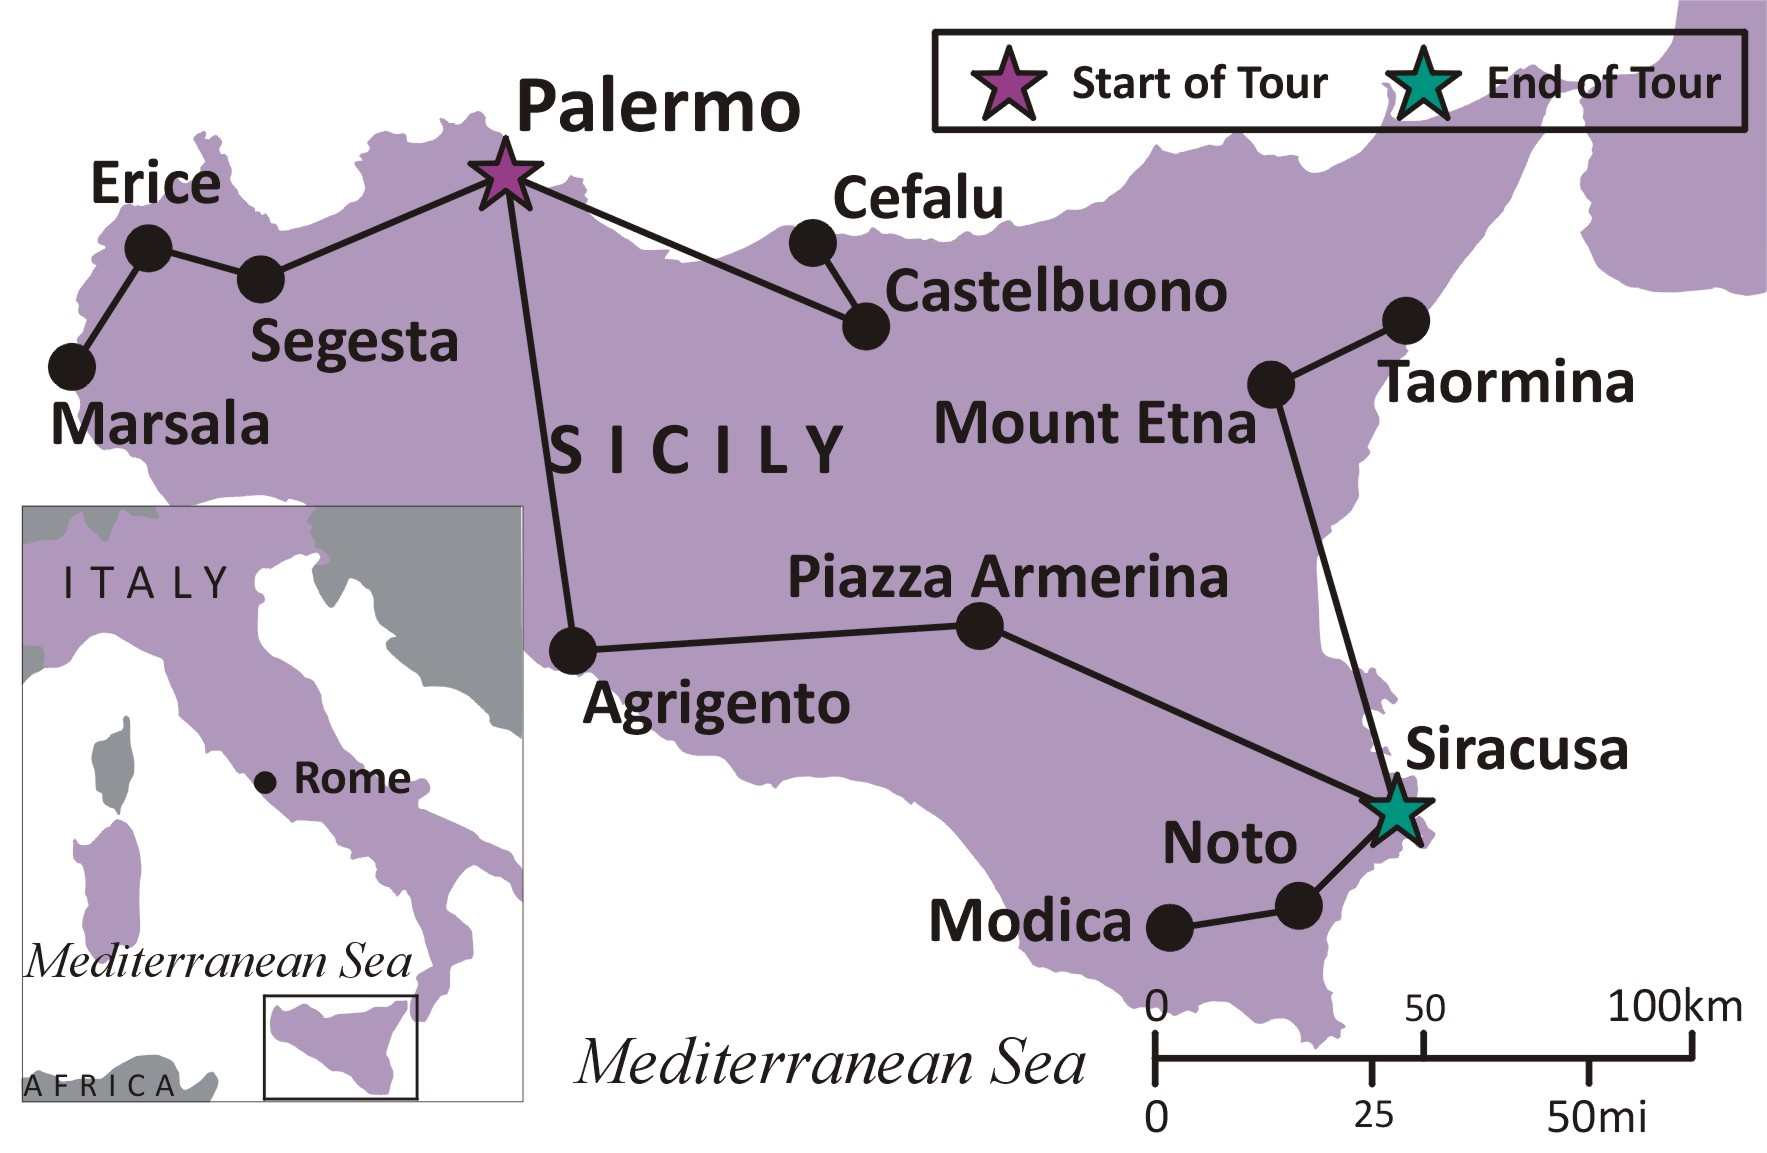 Sights and Soul Travels - Italy: The Secrets of Sicily - Overview on lampedusa island italy map, viceroyalty of peru on map, county of tripoli on map, kingdom of sicily flag, battle of cannae on map, principality of antioch on map, ryukyu kingdom on map,